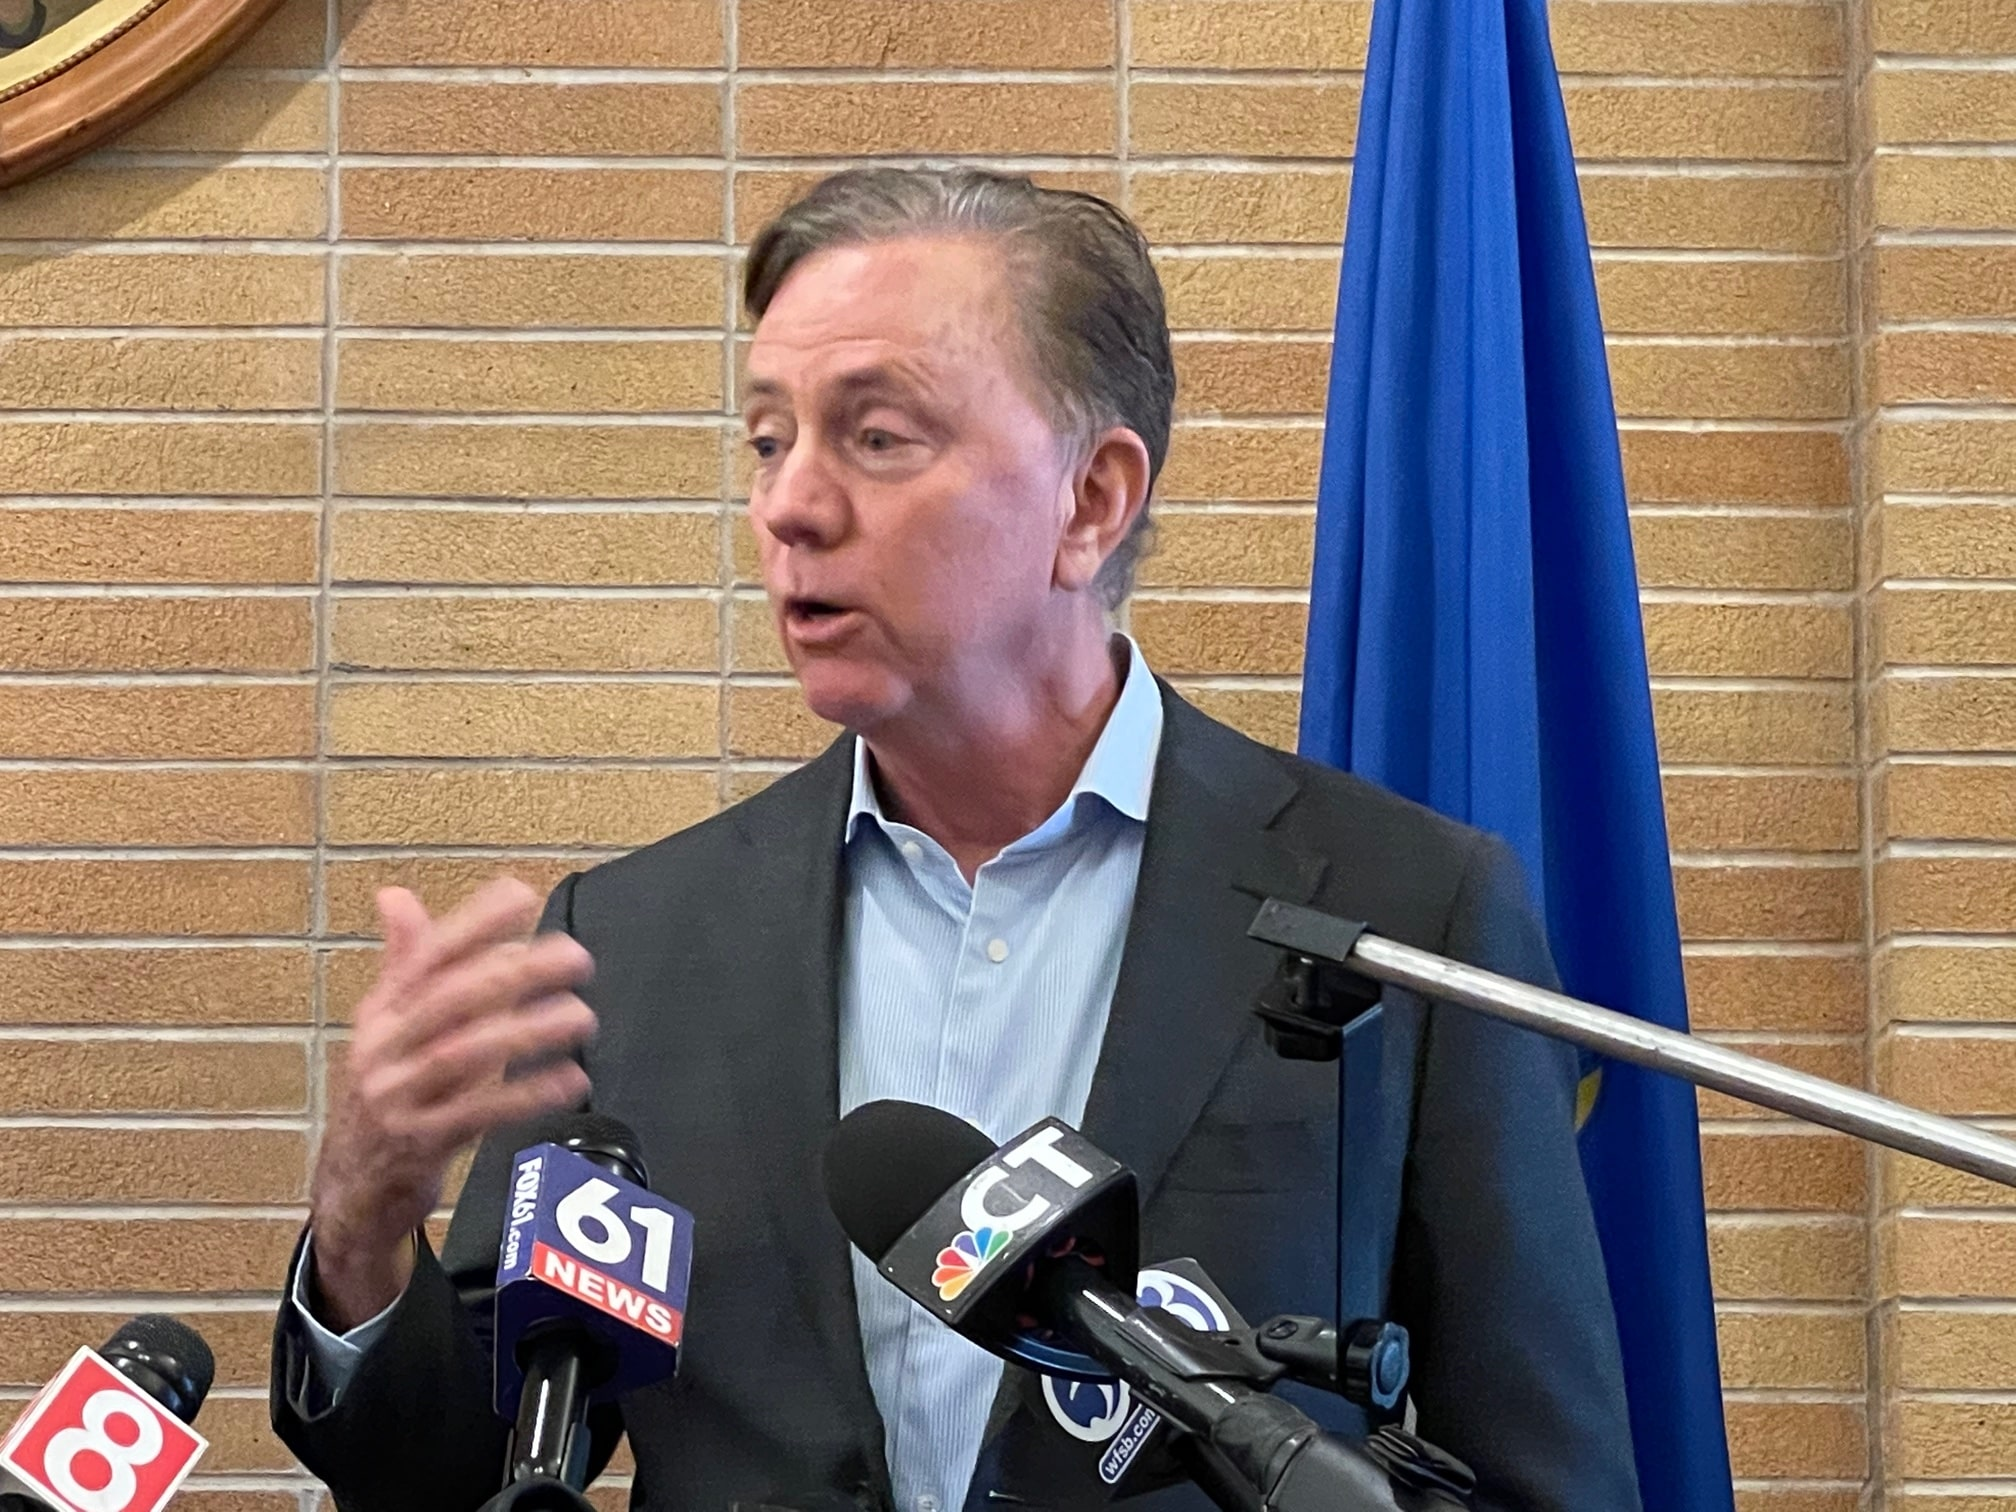 The power of incumbency: For now, Ned Lamont is tip-toeing towards re-election